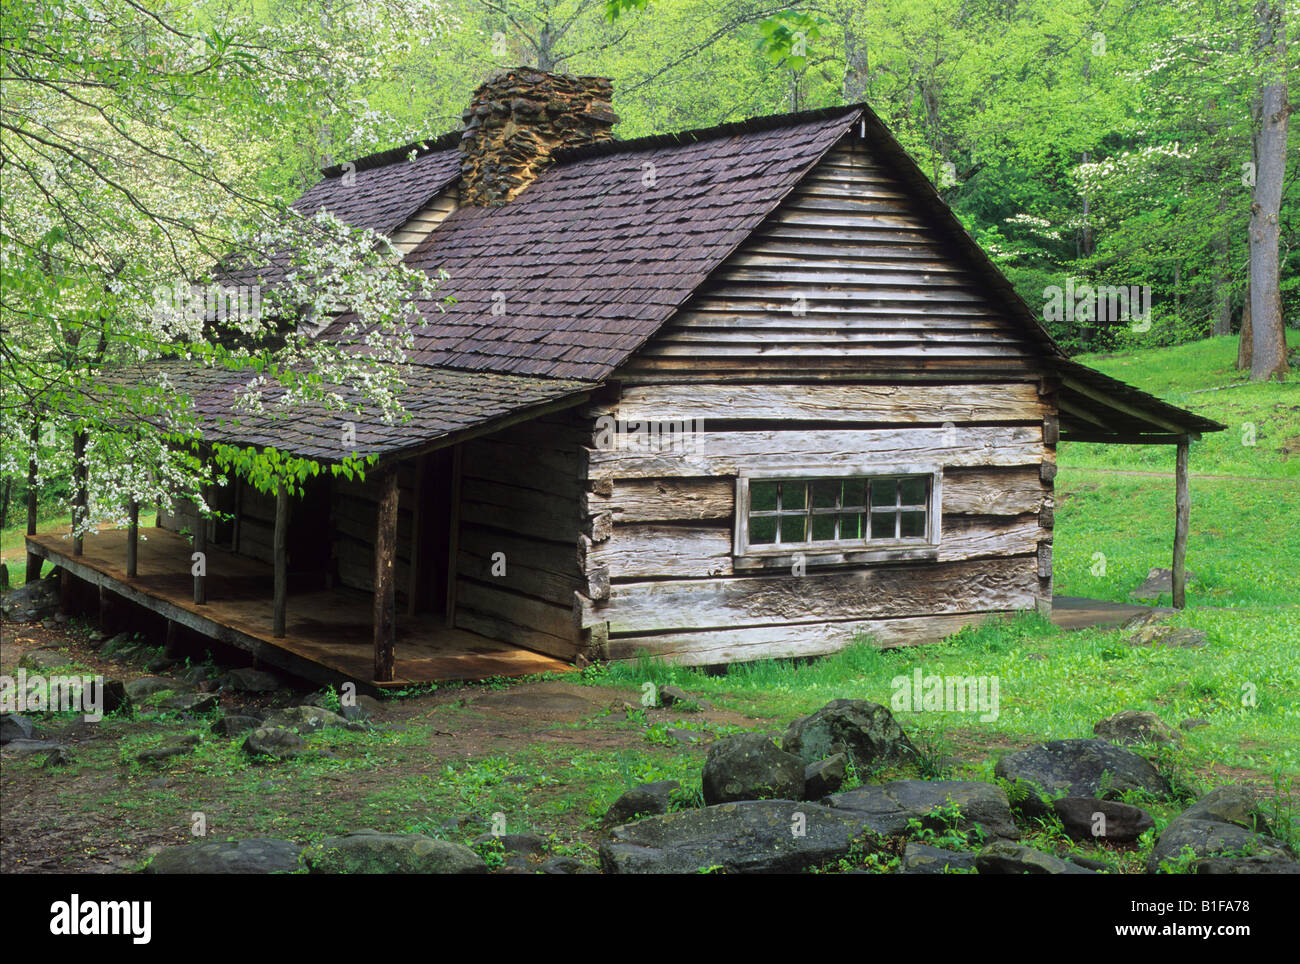 great scenic near my on trips bud drive in fork cabins dp cabin nature smoky sm tn motor ogle the road mountains gatlinburg trail noah roaring